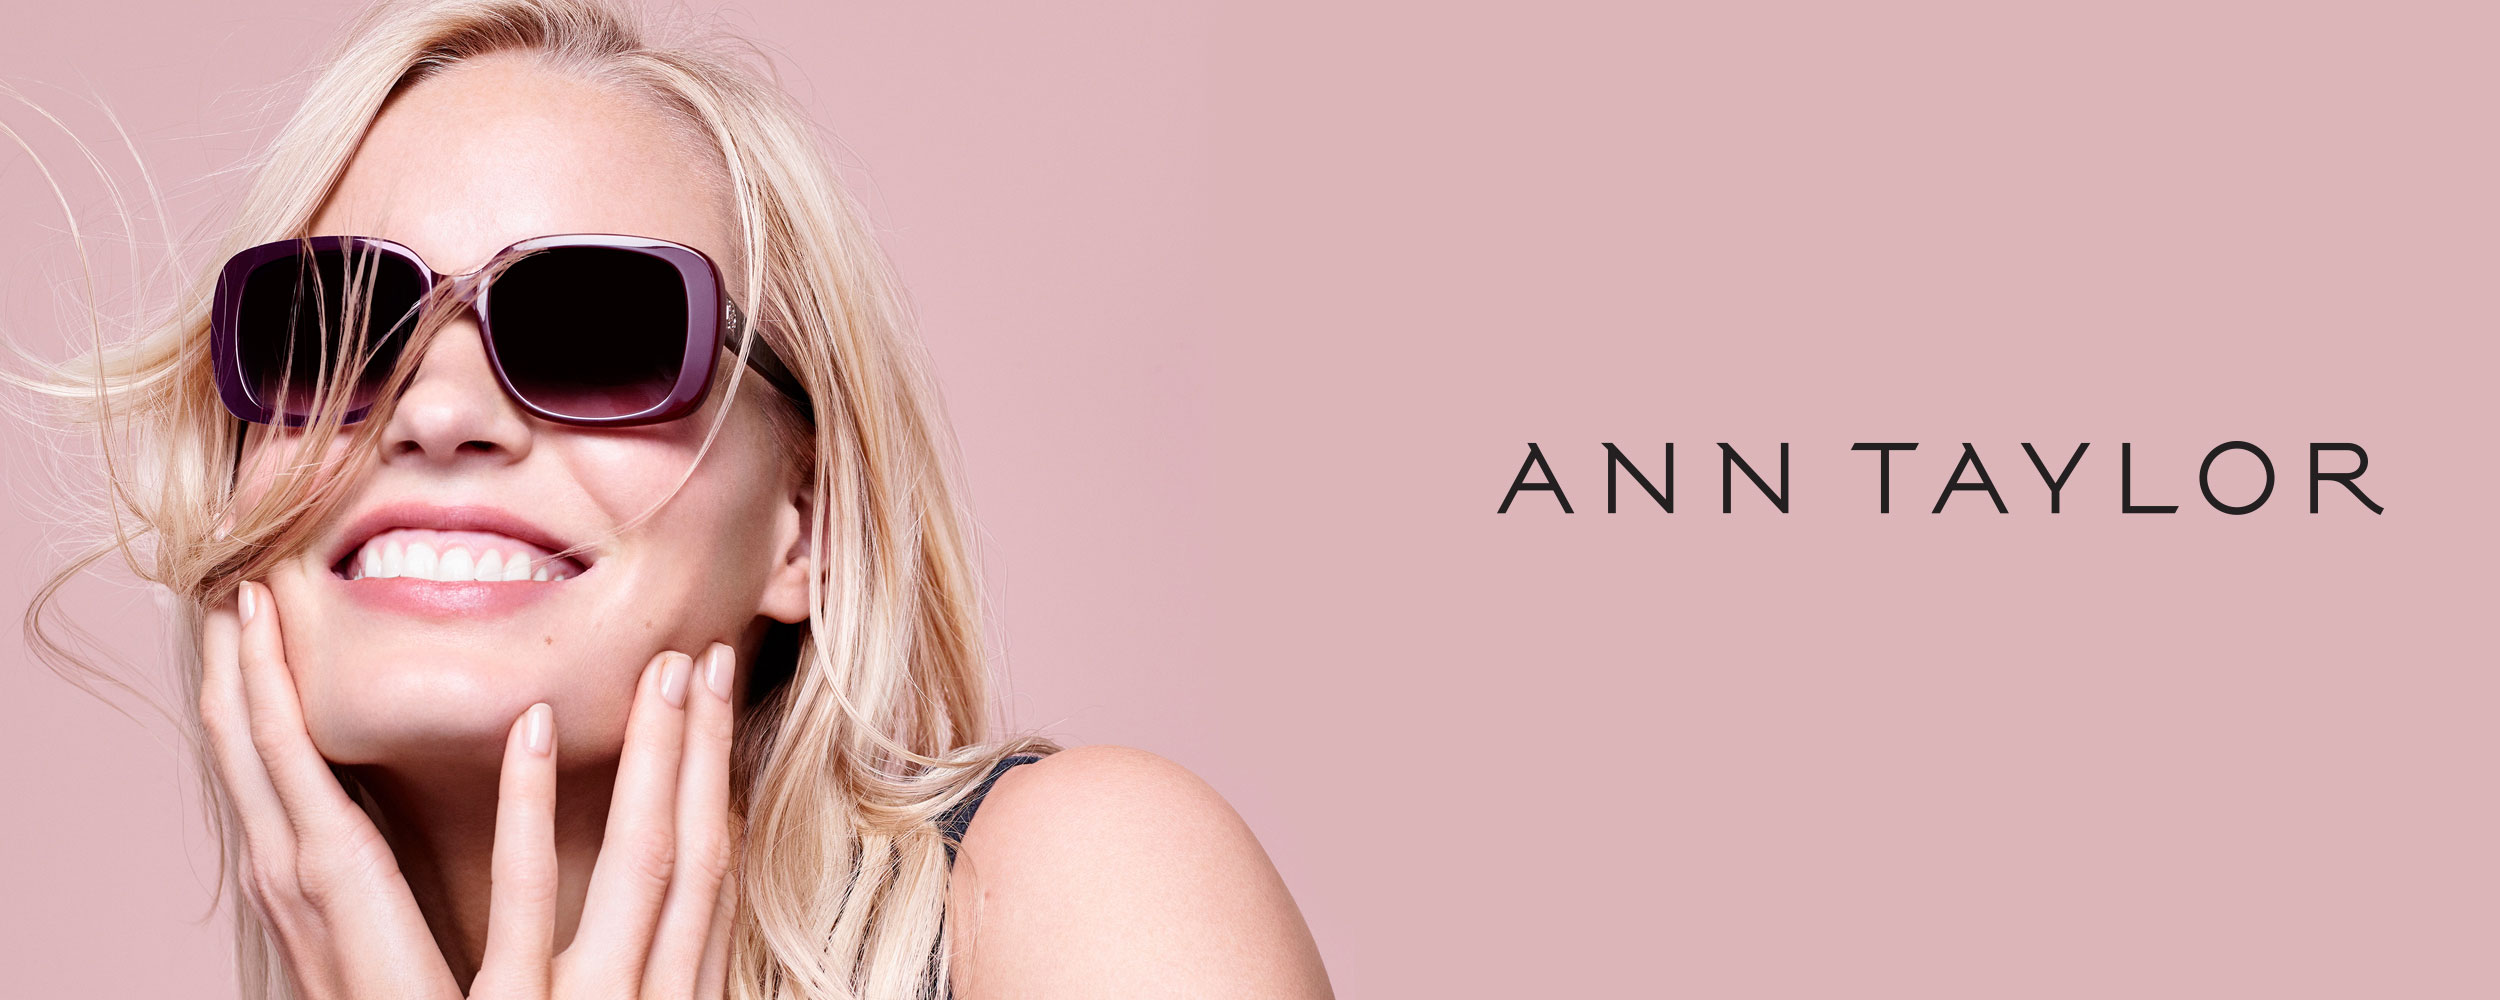 Ann Taylor Sun collection banner.